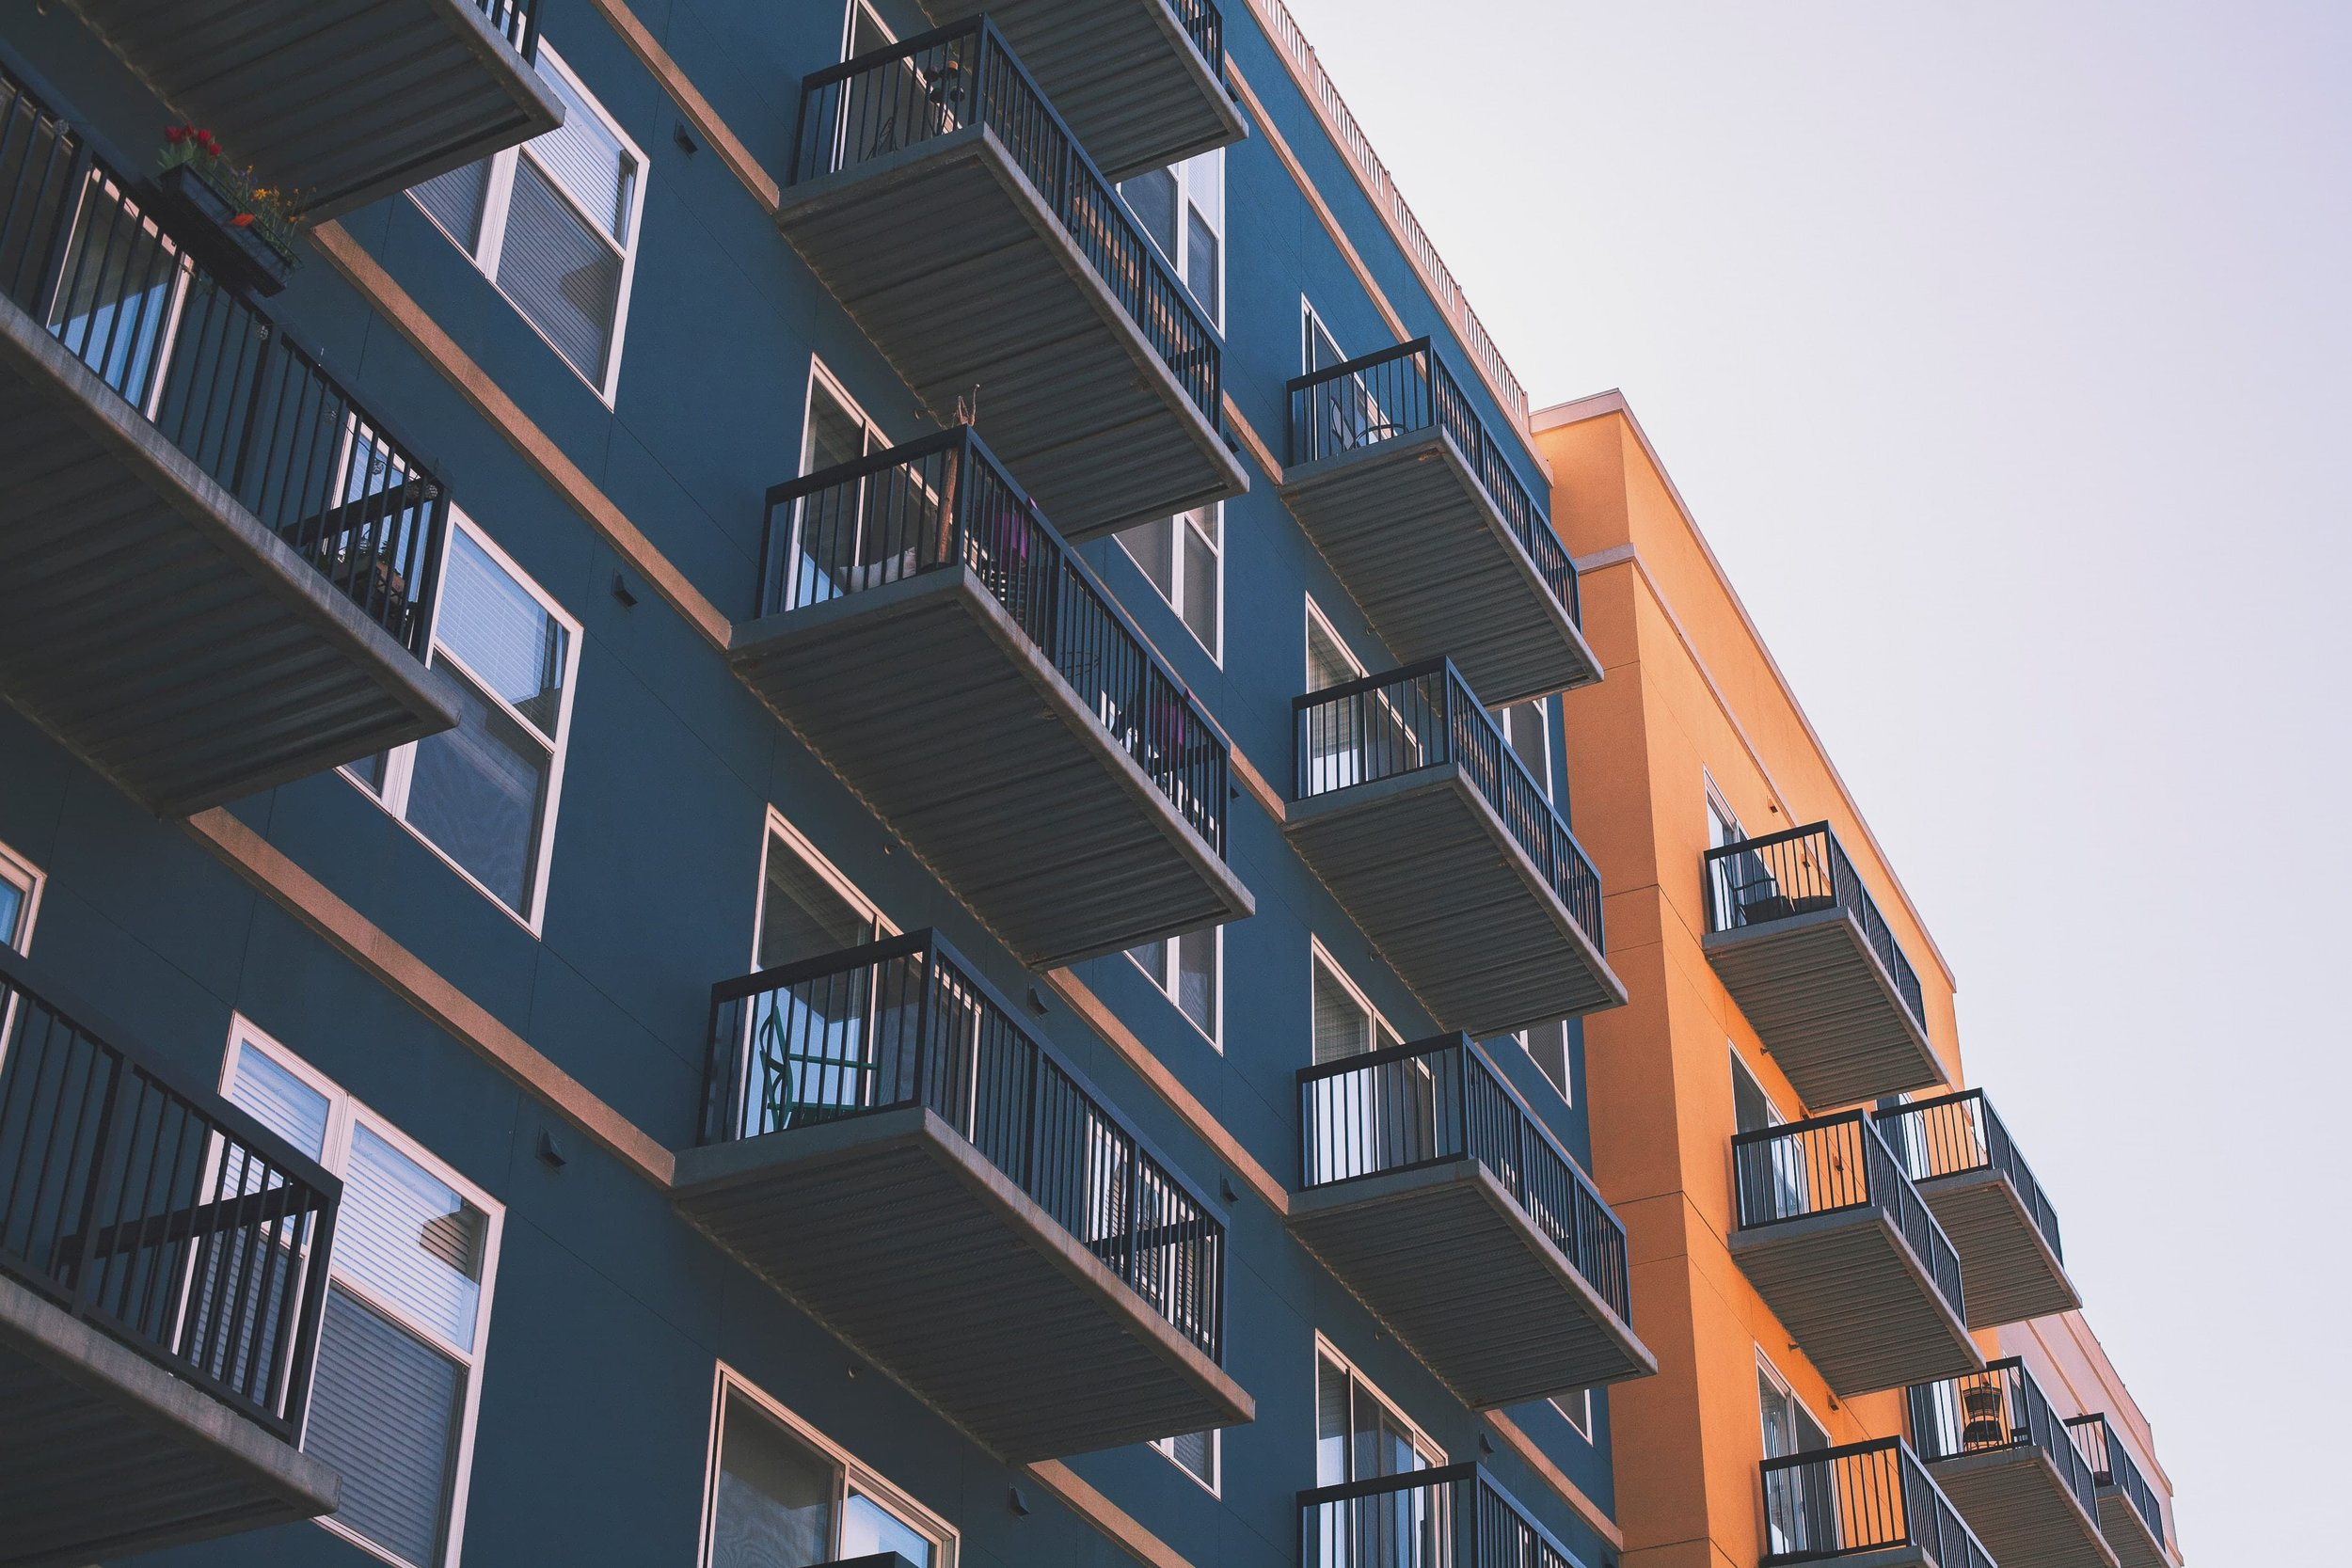 Is inclusionary zoning creating less affordable housing